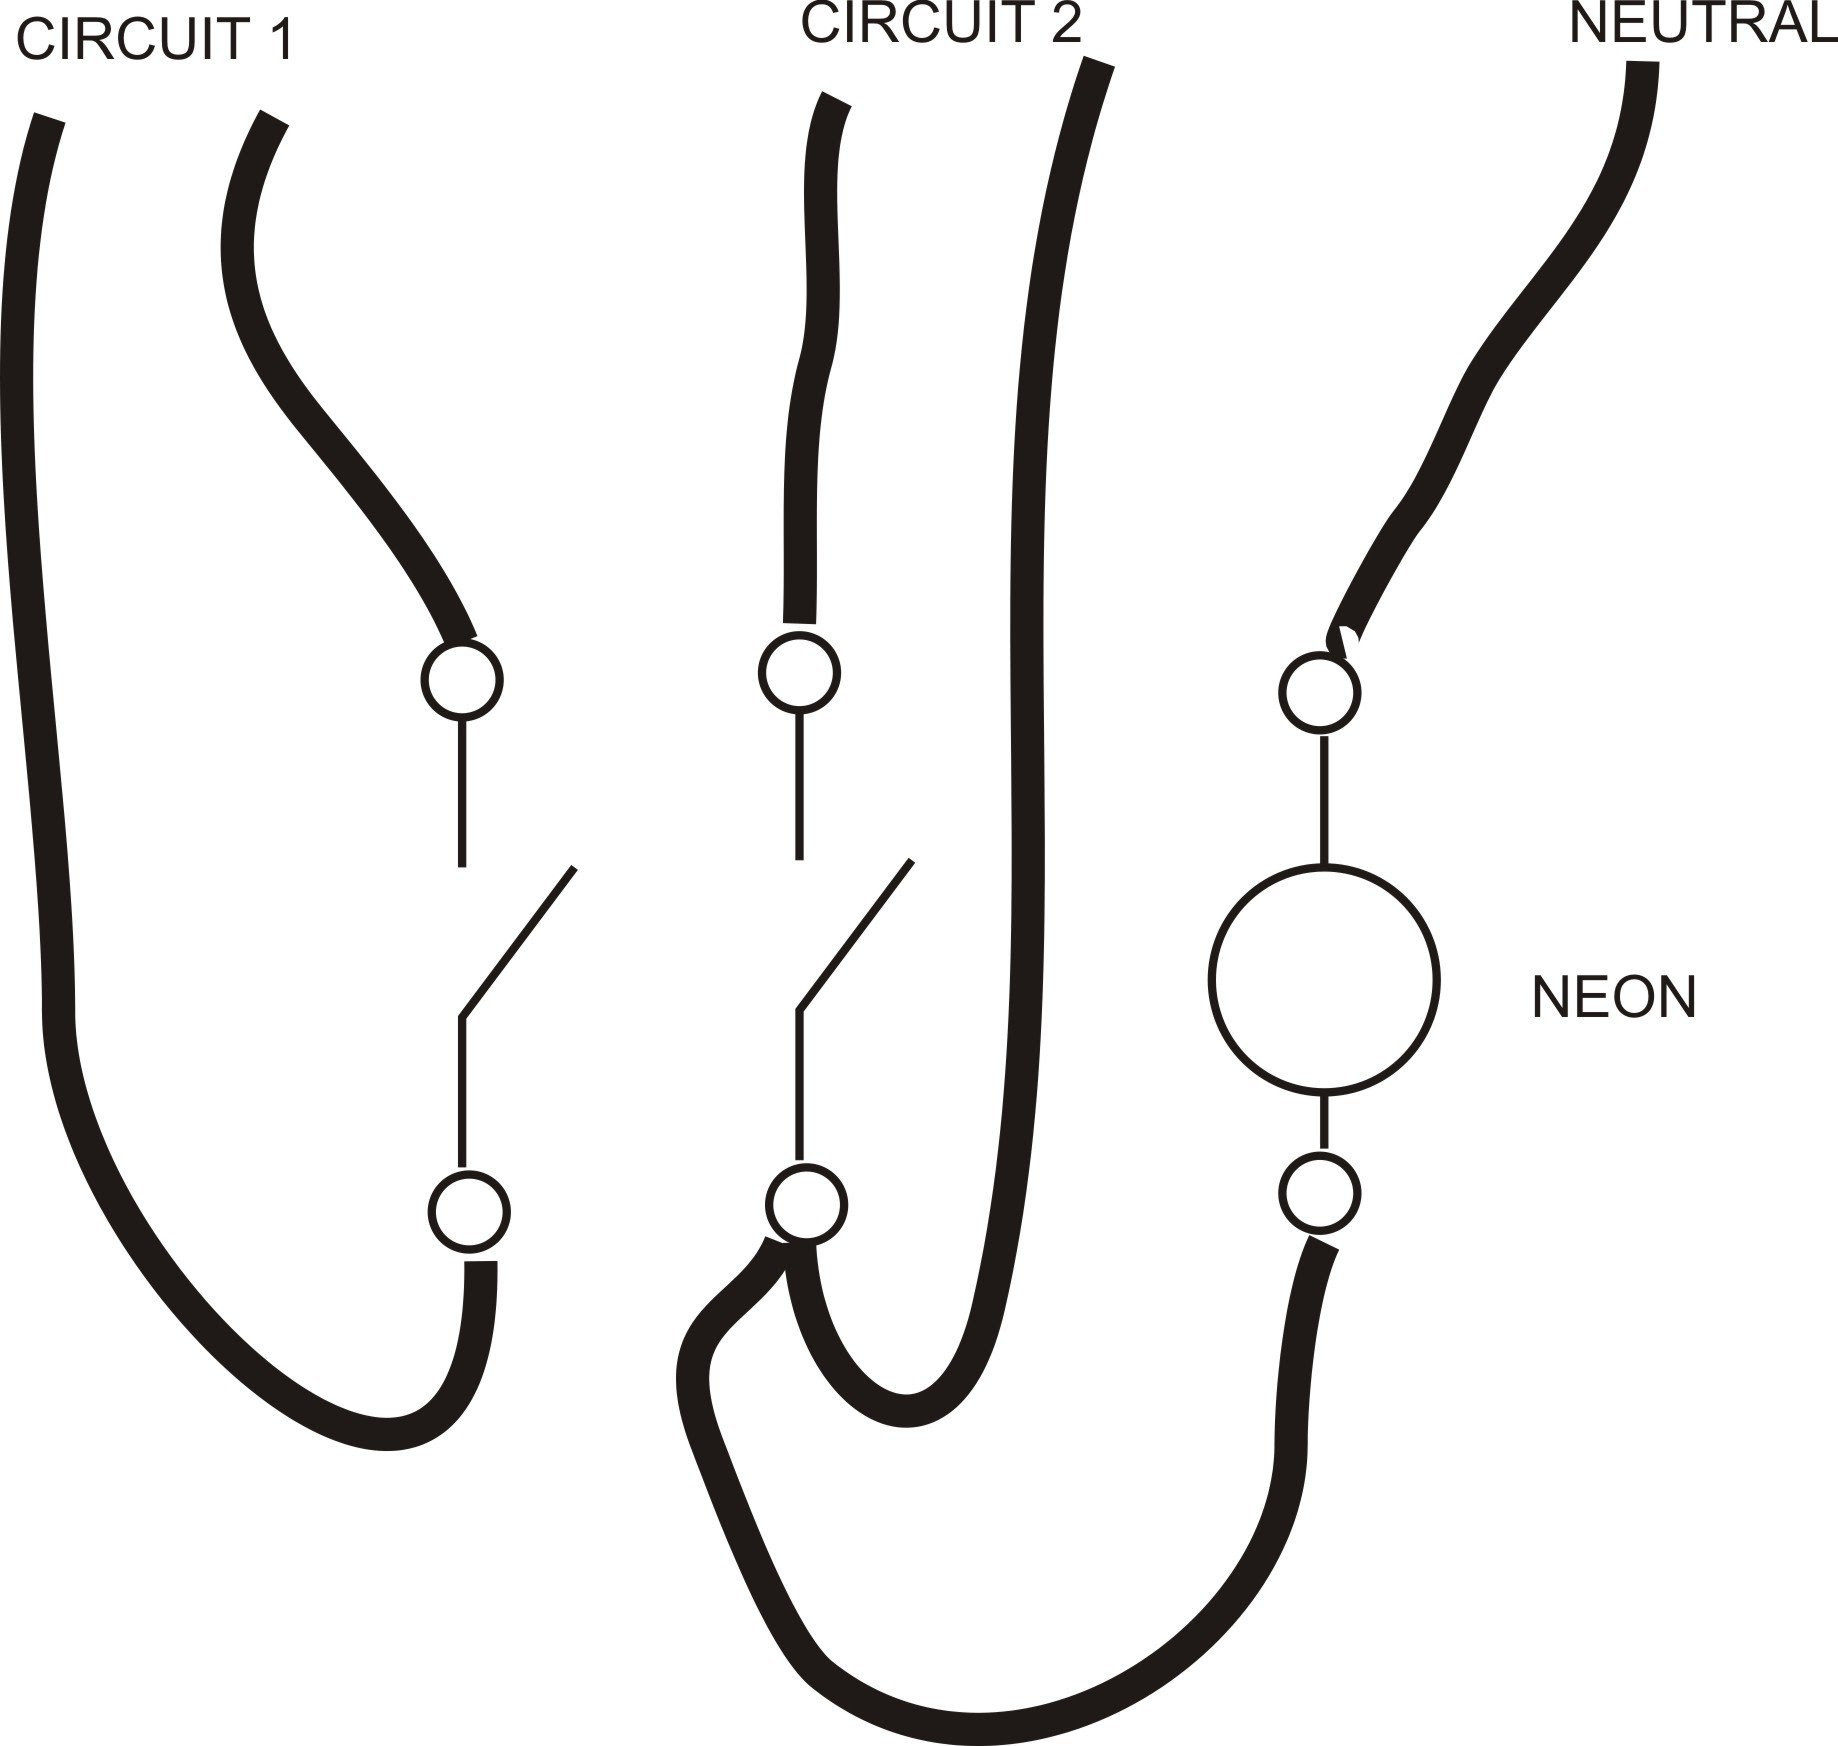 neon wiring diagram